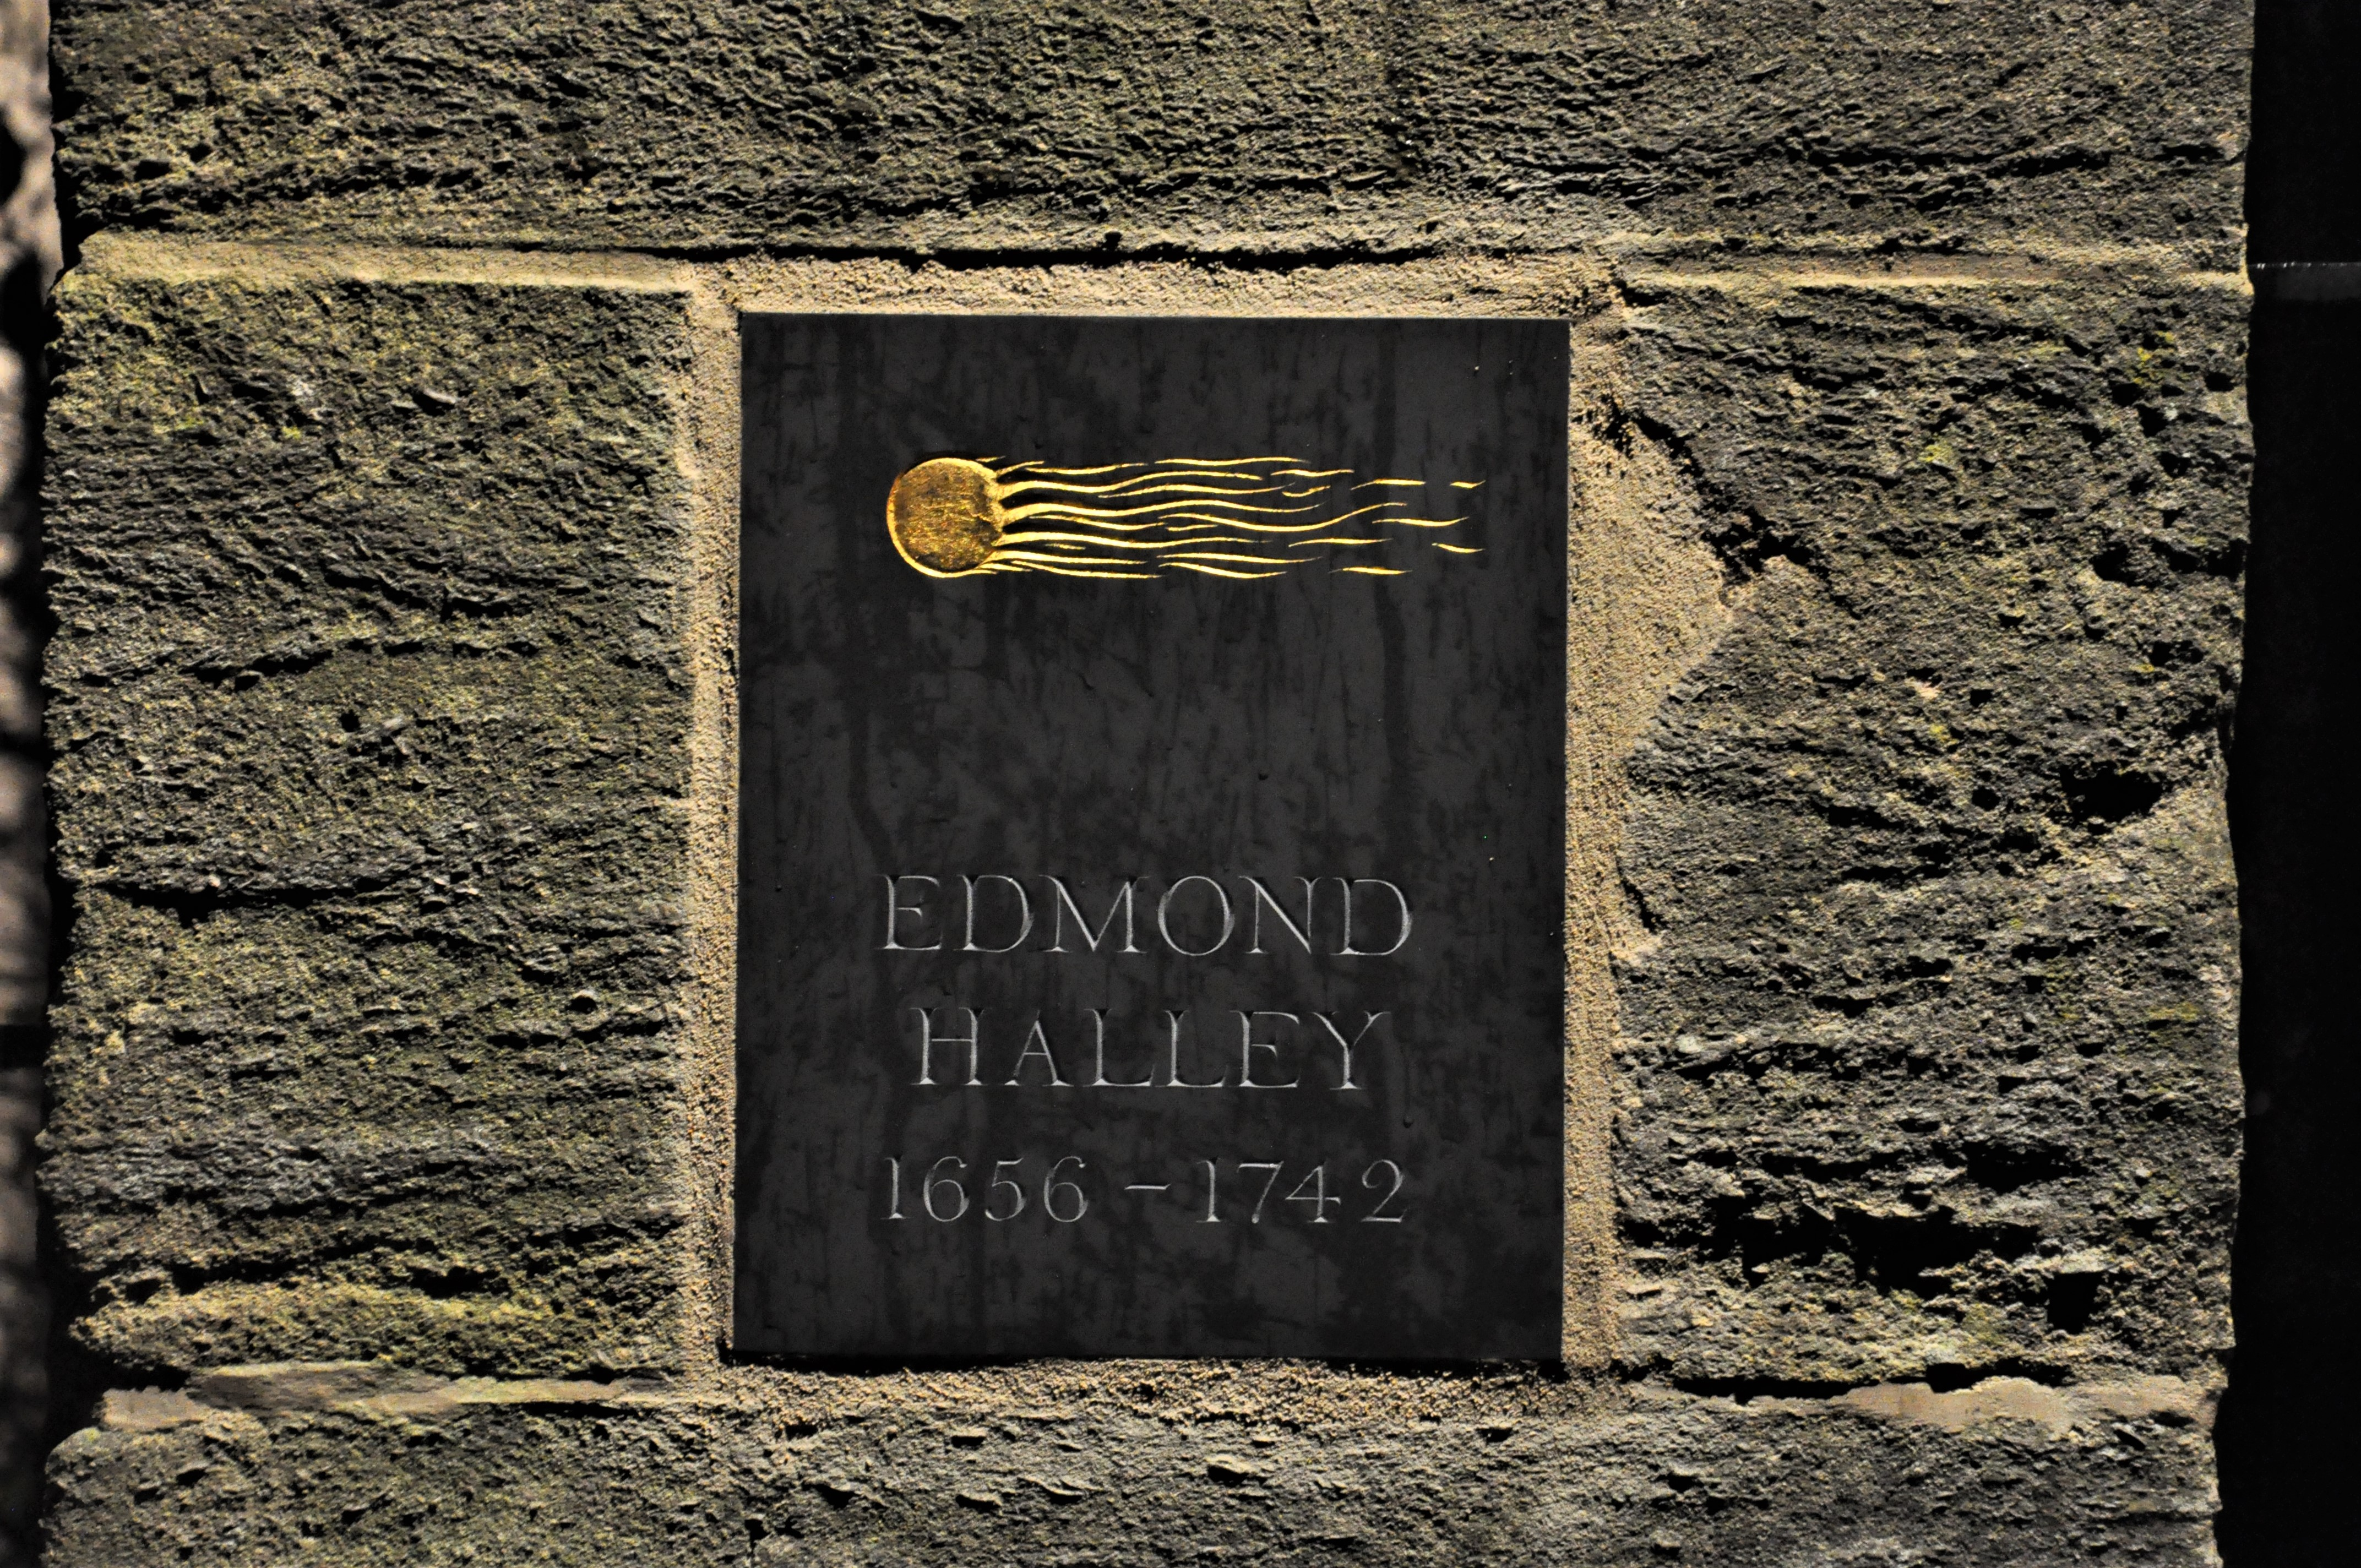 Edmond Halley plaque, including a depiction of a comet